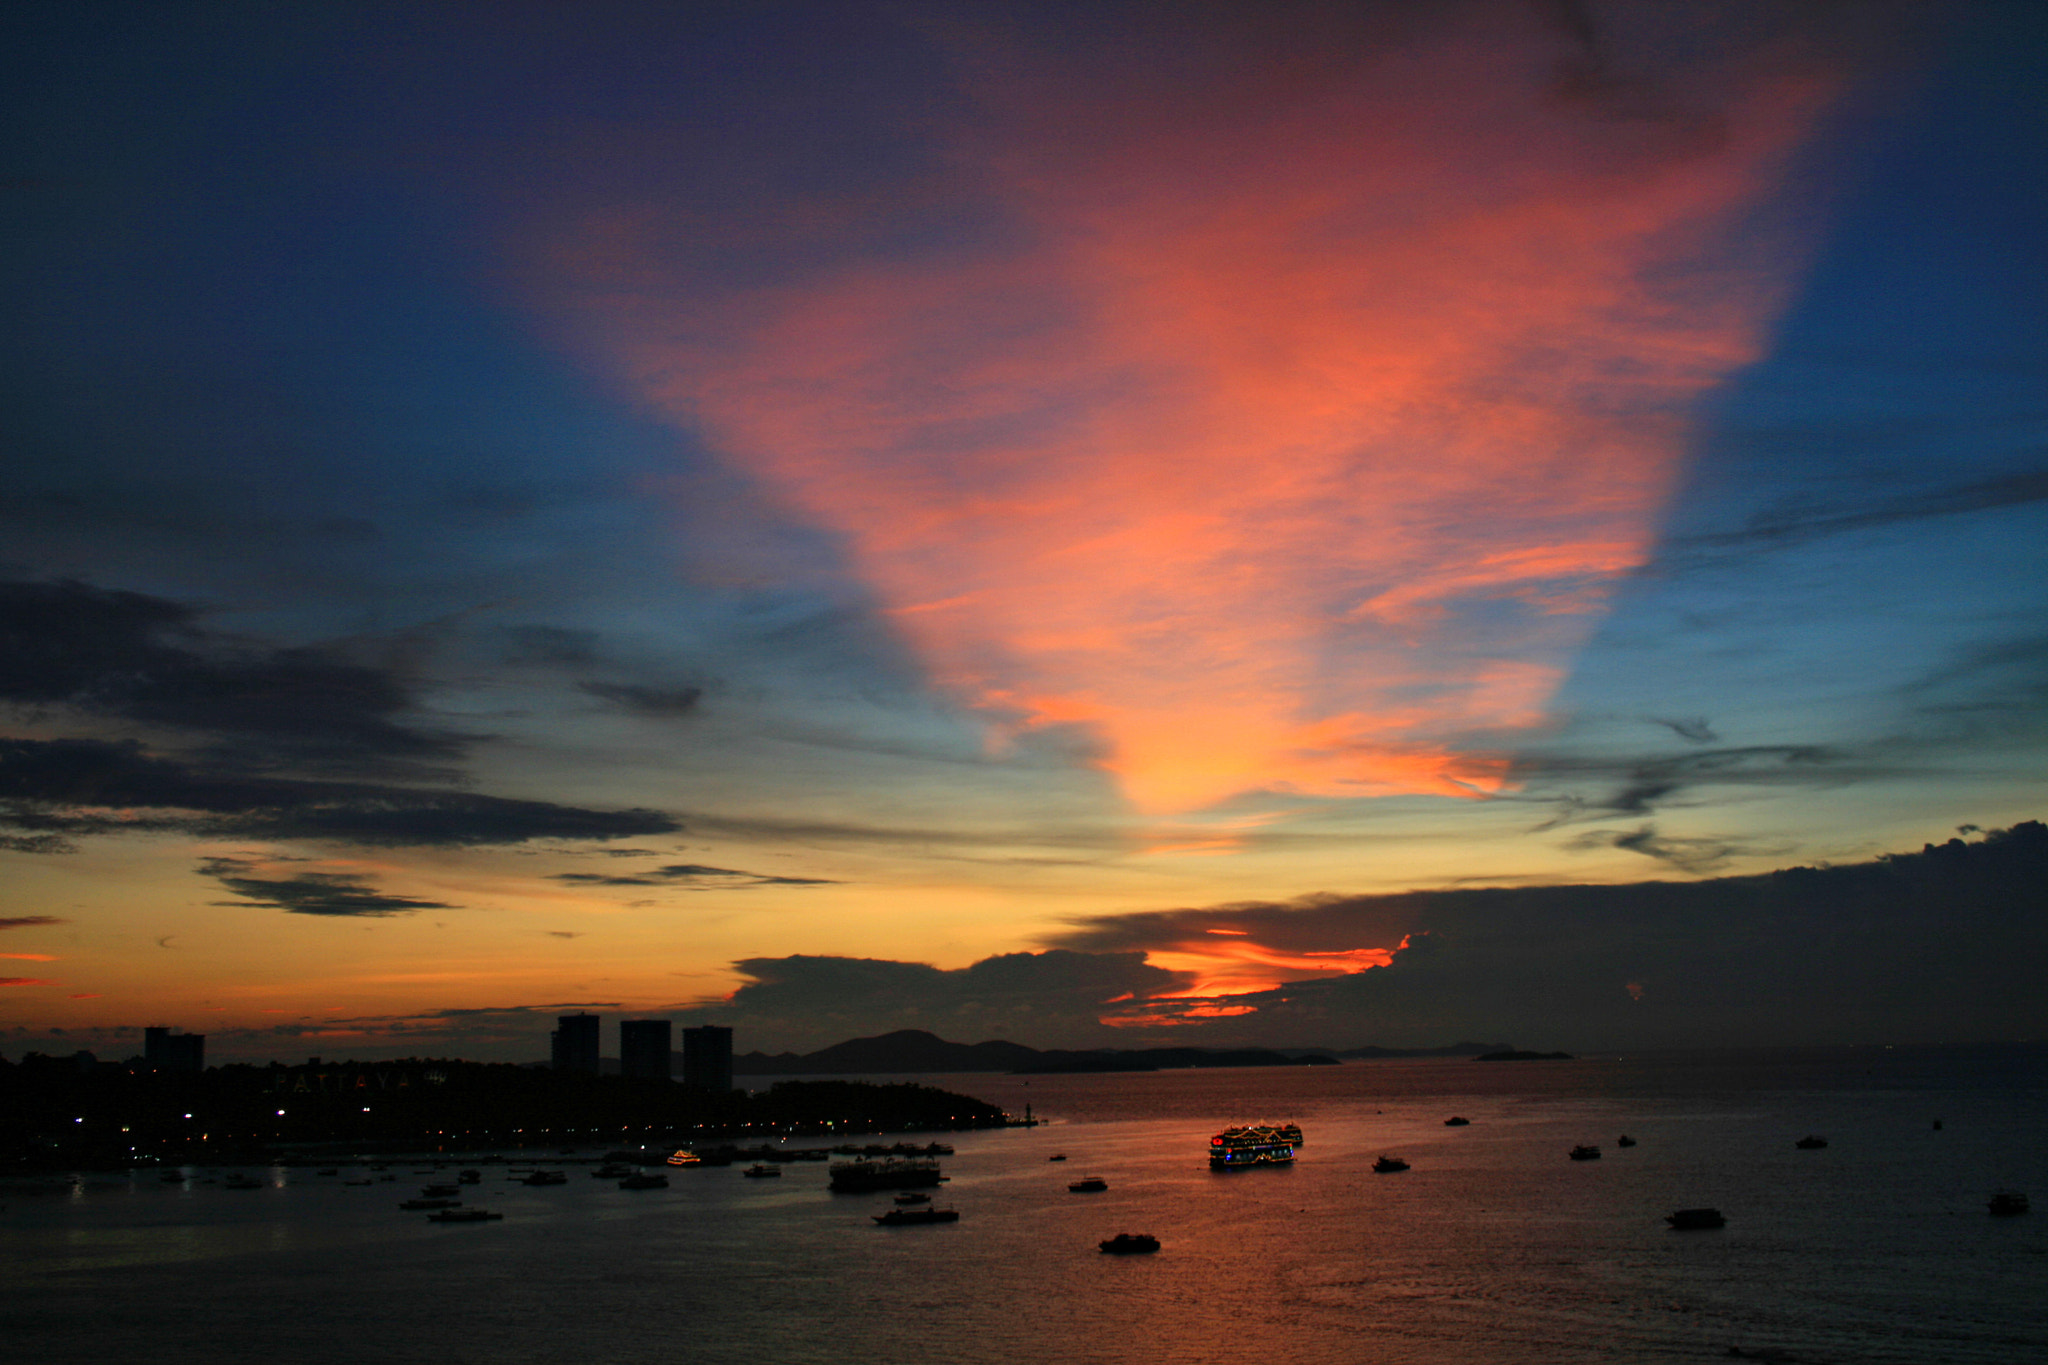 Photograph Pattaya Bay by Candle Tree on 500px